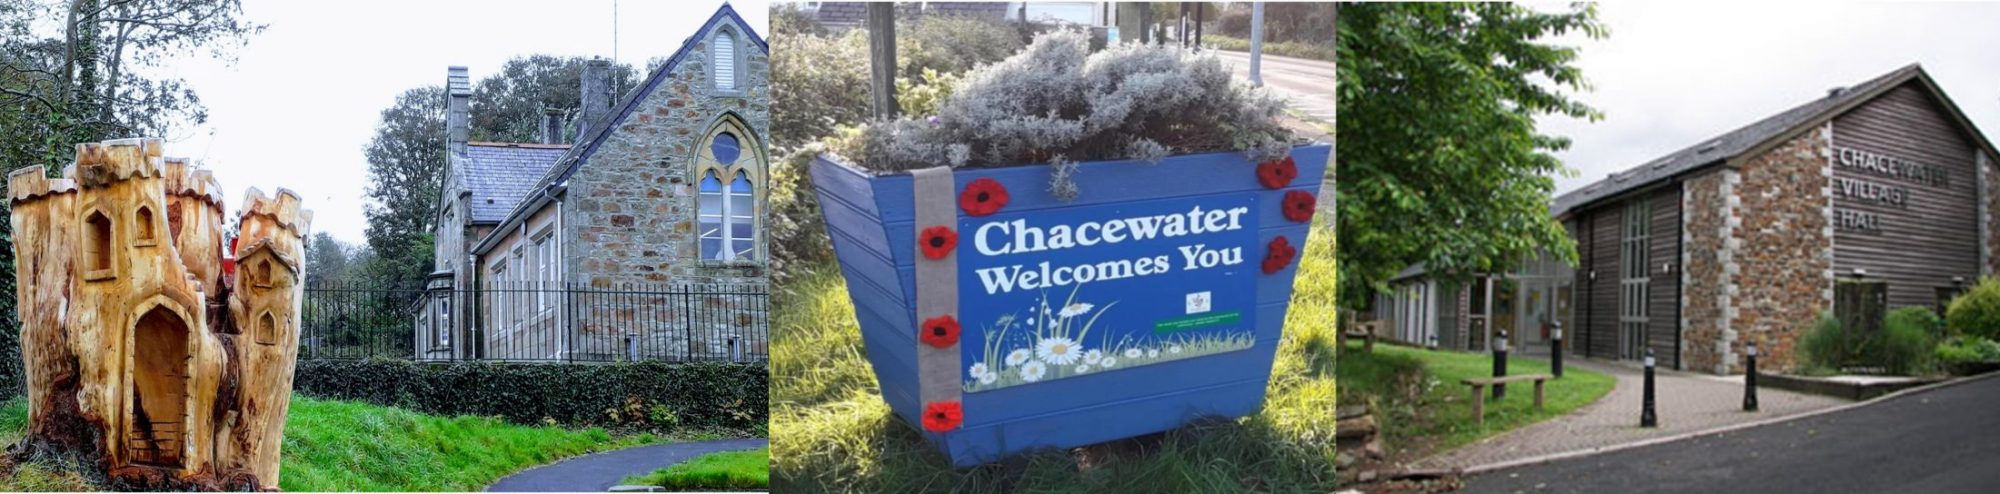 Chacewater Village Website